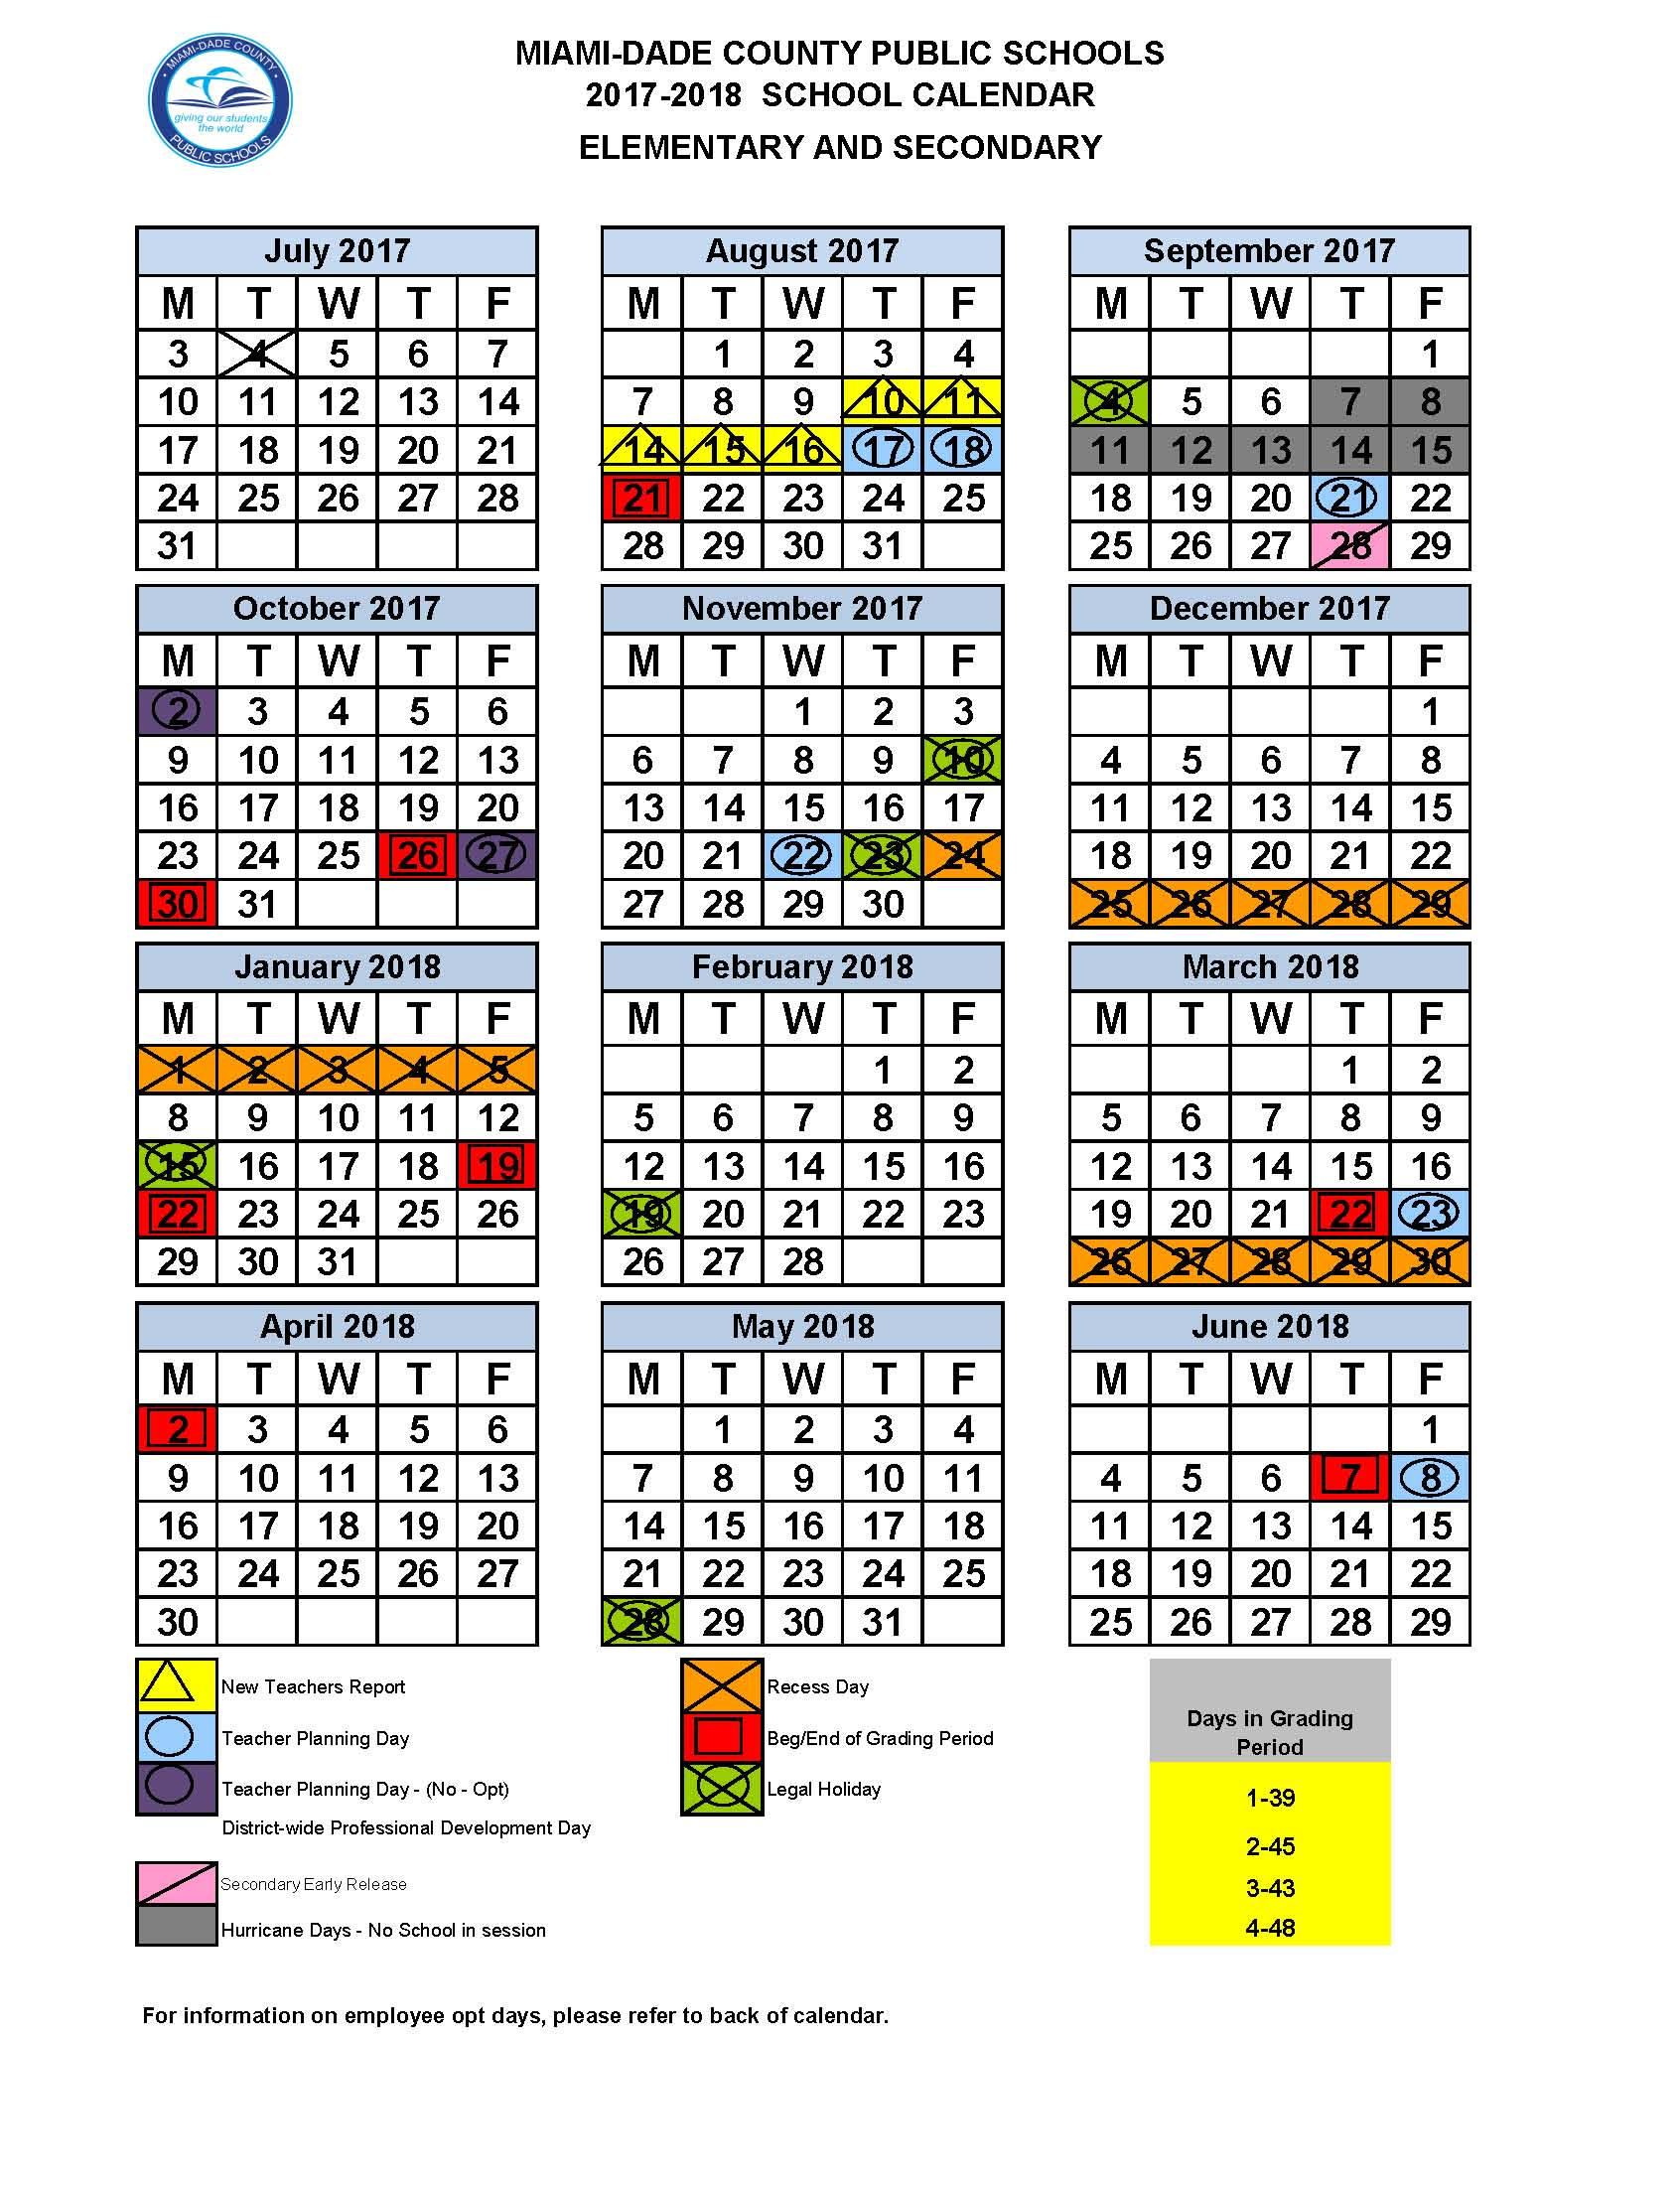 School Calendar 2018 : Calendar miami dade merry christmas and happy new